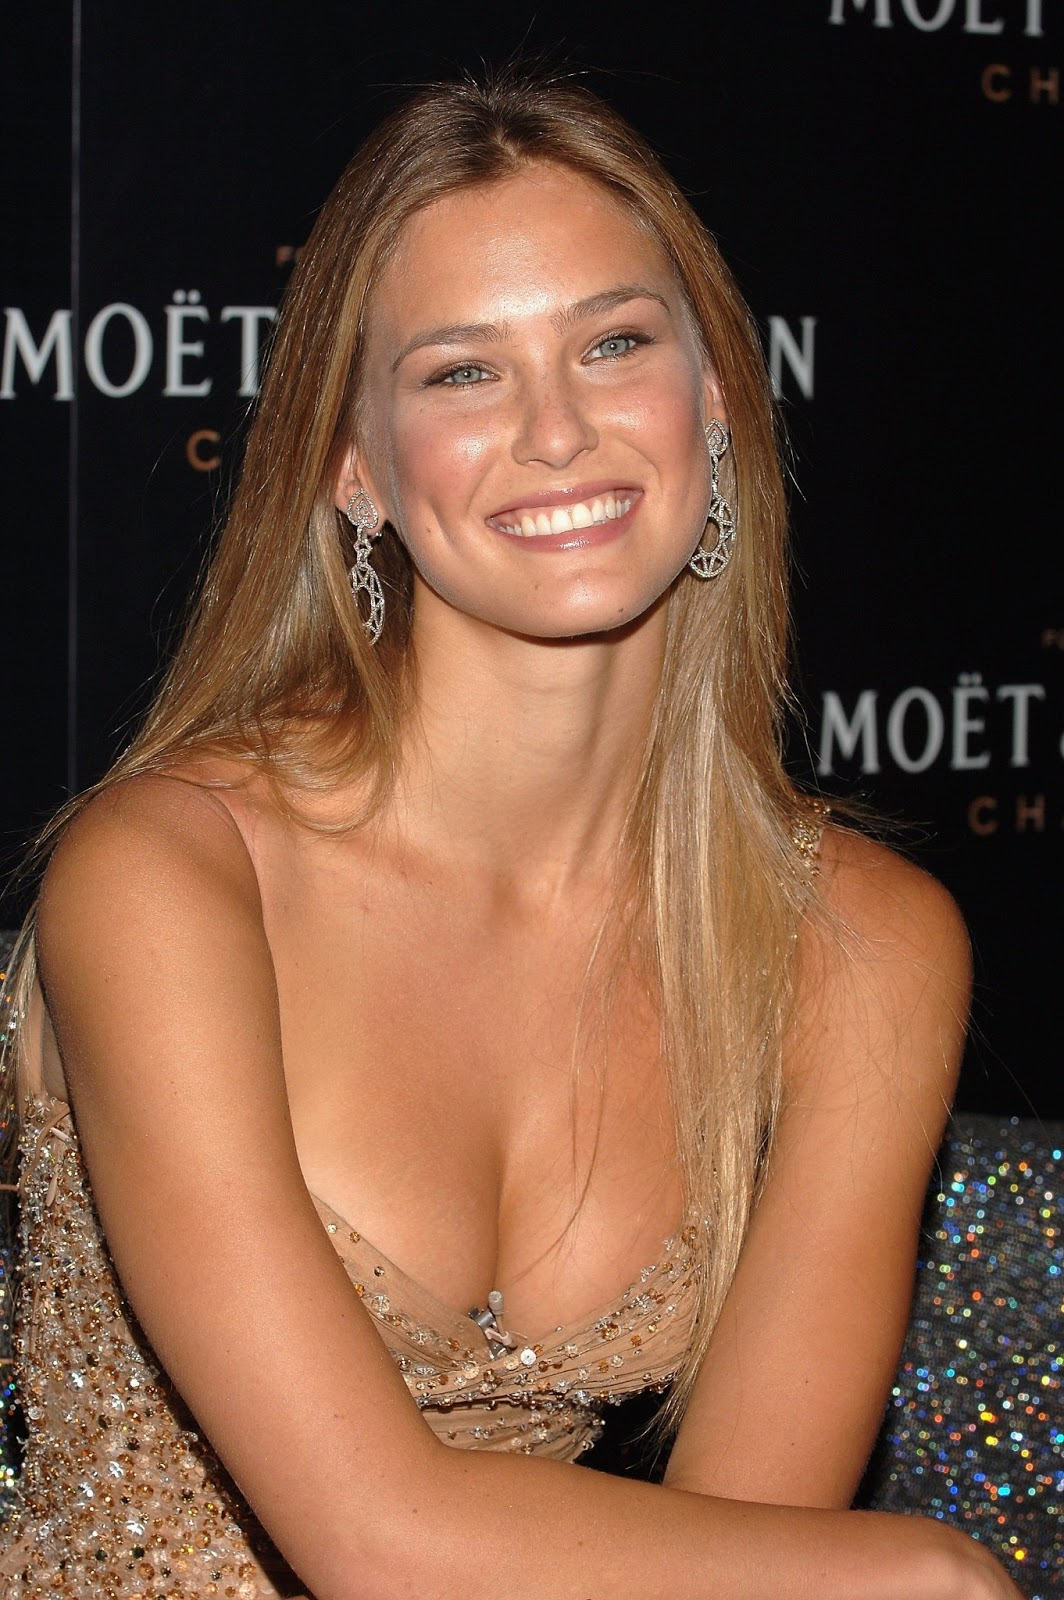 Redefining the Face Of Beauty : BEAUTIFUL GAL'S FROM ISRAEL! Bar Refaeli Dating